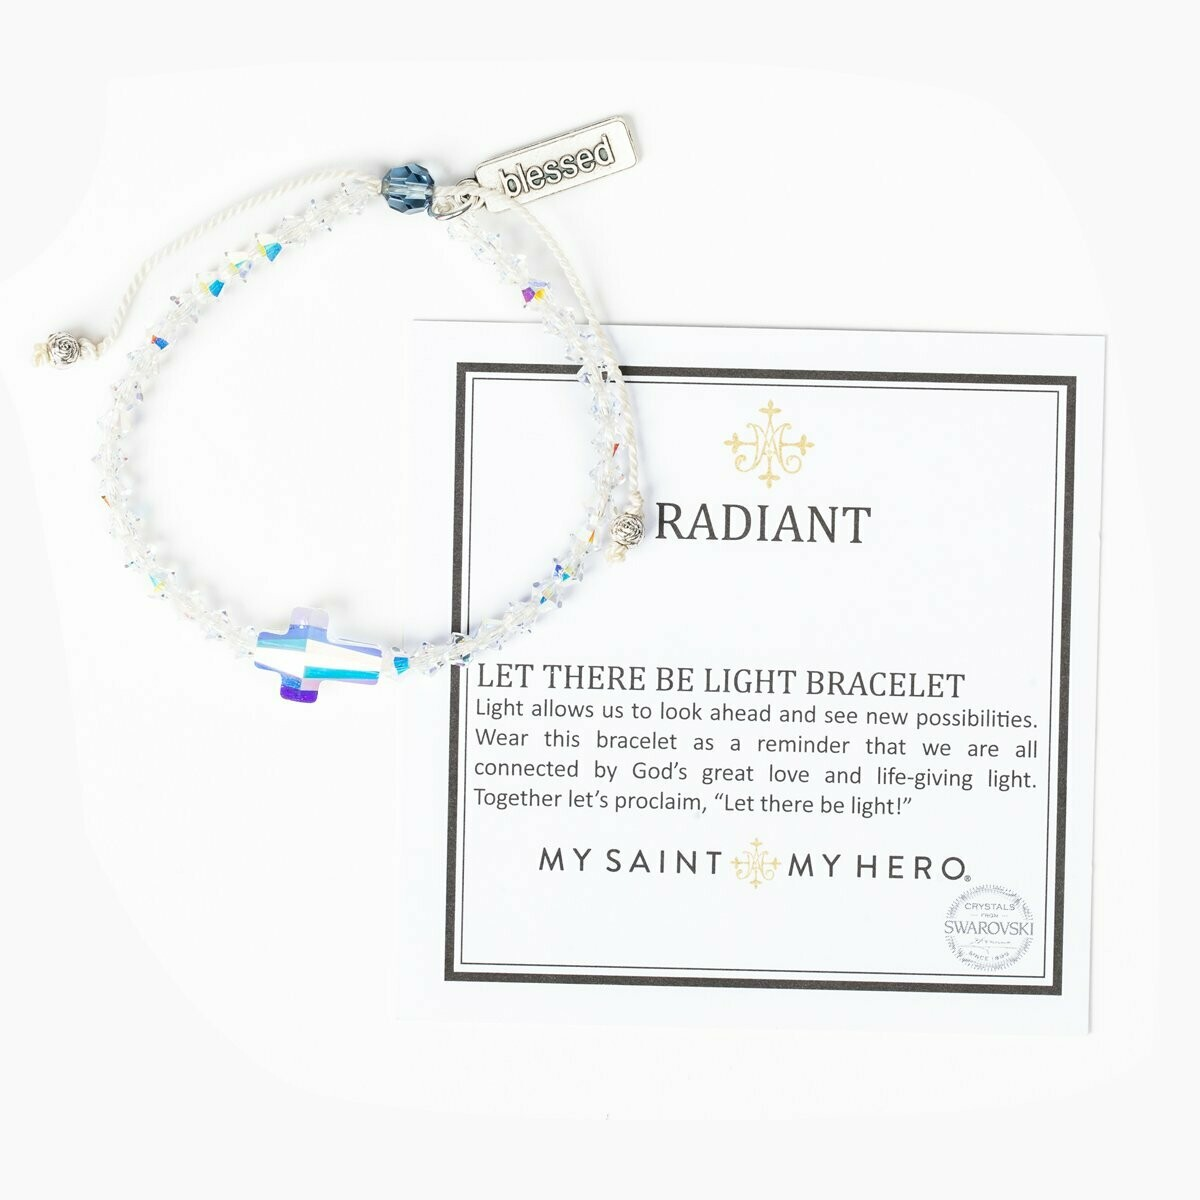 My Saint My Hero Radiant Let There Be Light Bracelet - Aurora Borealis